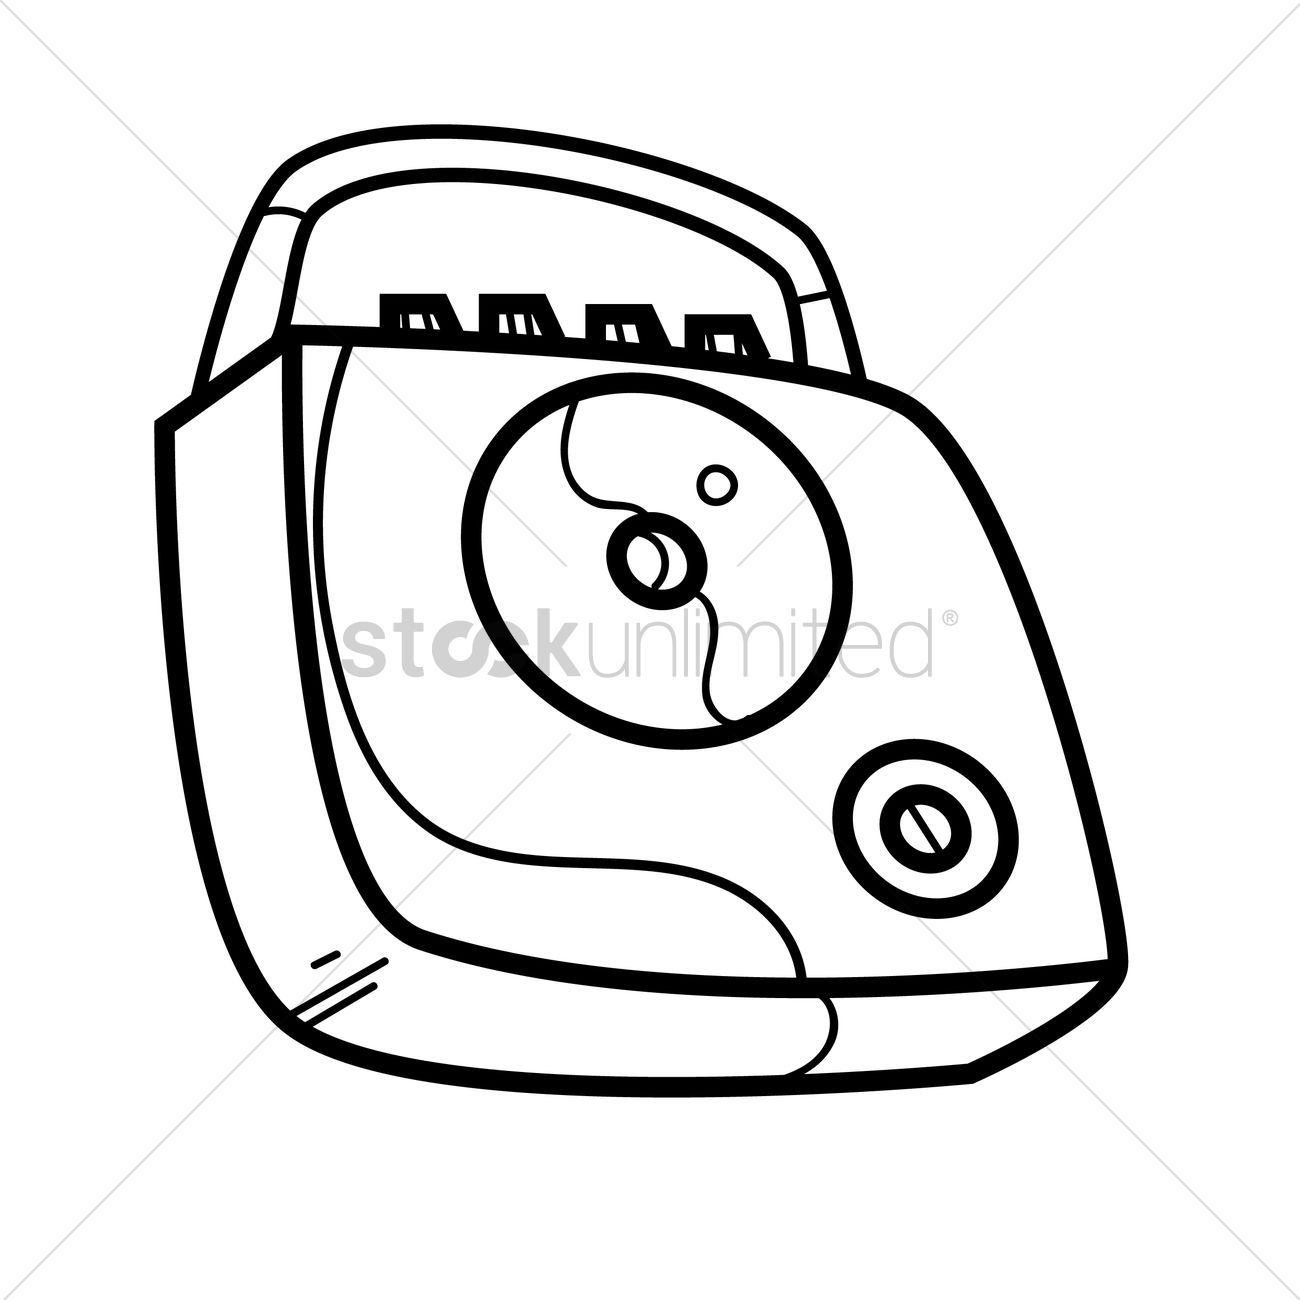 1300x1300 Free Cd Player Vector Image